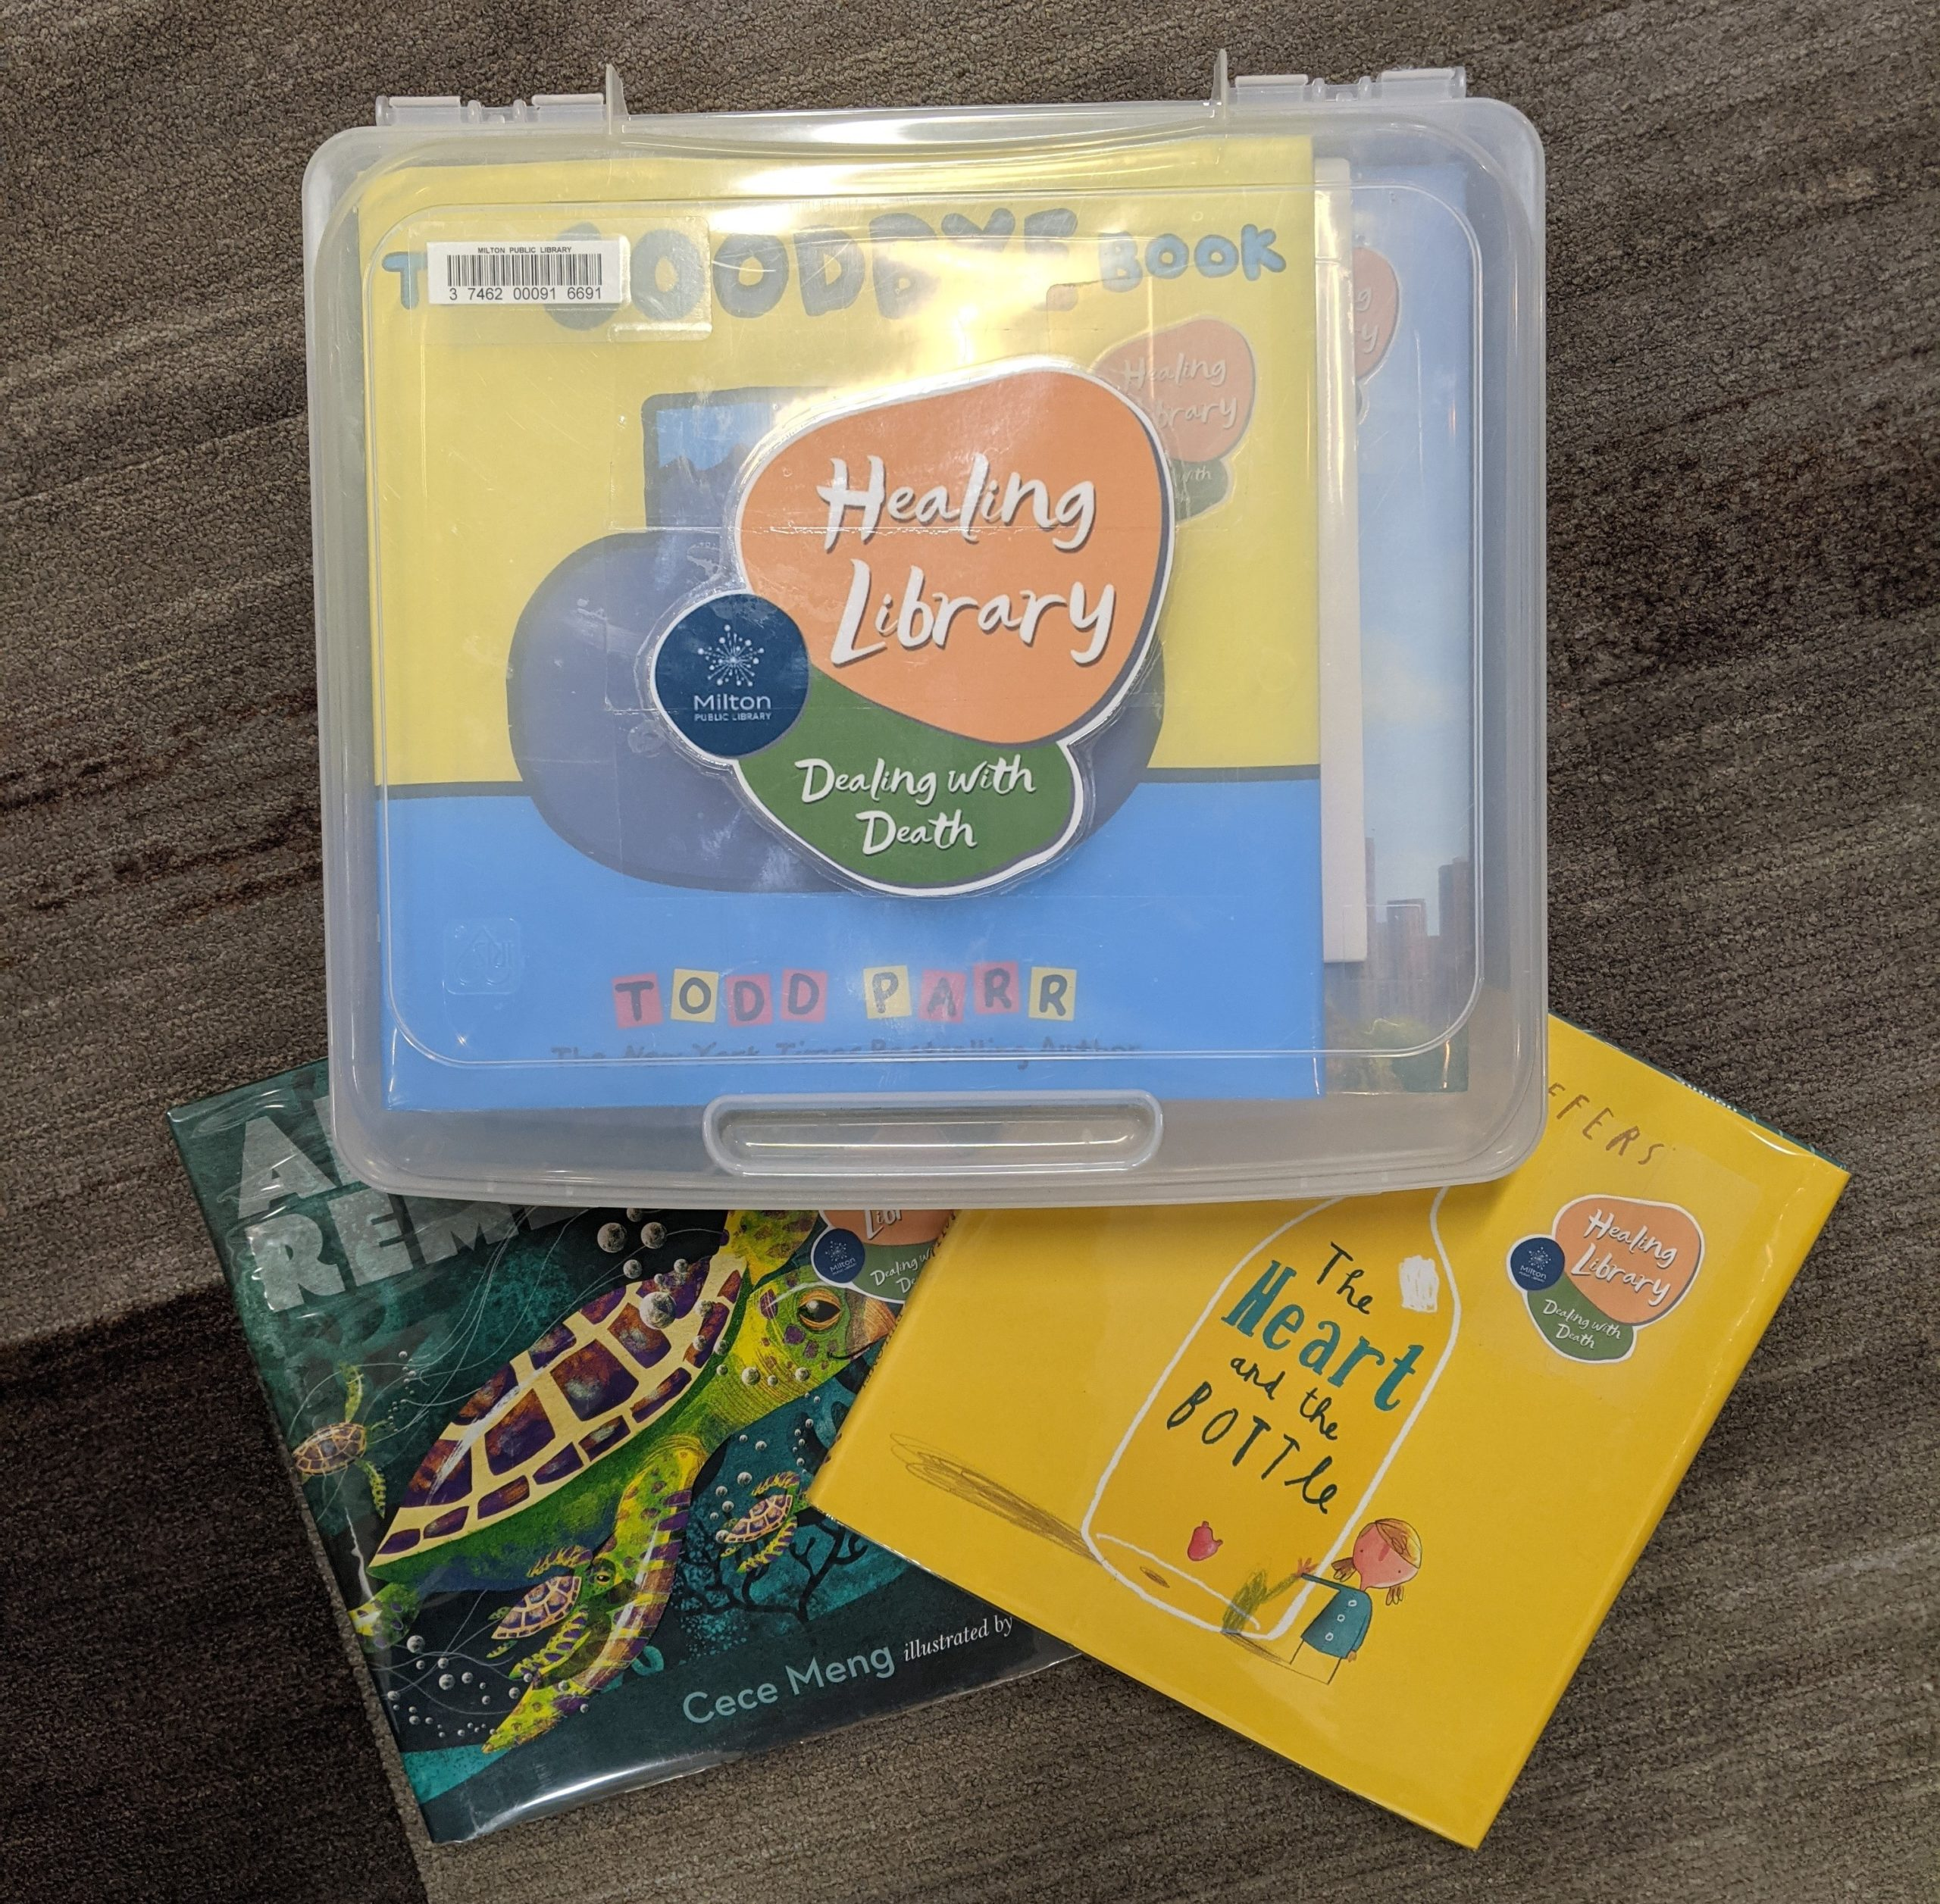 Dealing with Death Healing Library Kit picture